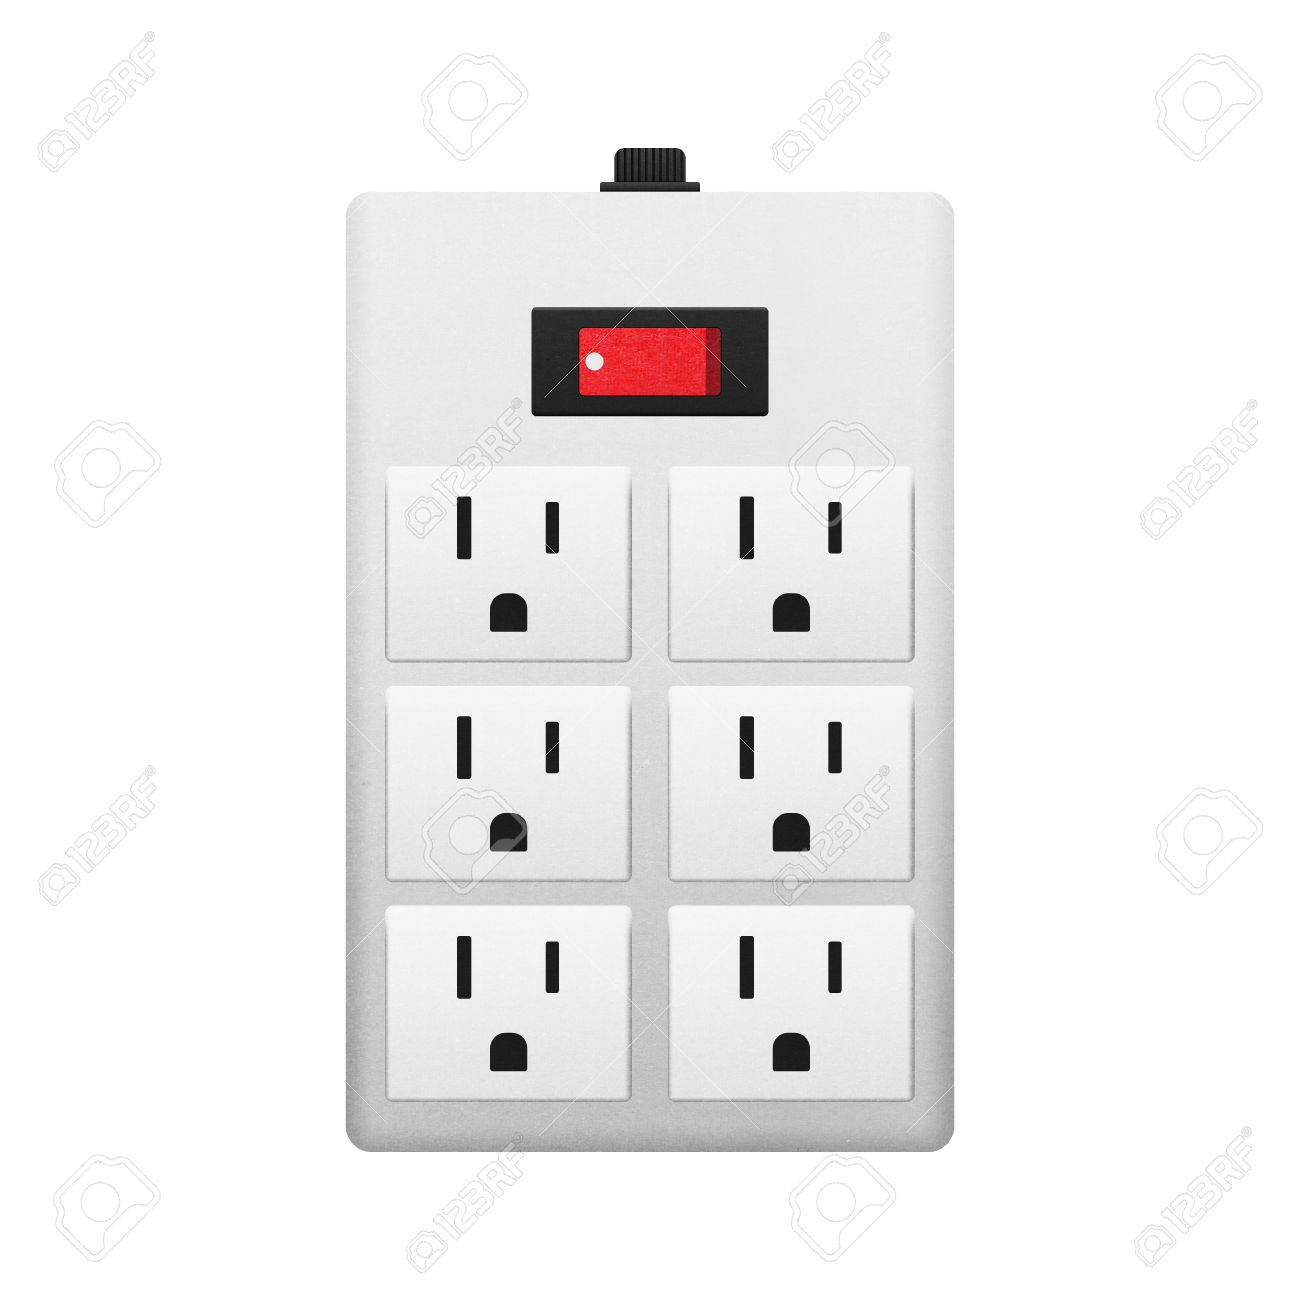 Electrical Outlet With Switch For Safety In The House Stock Photo ...